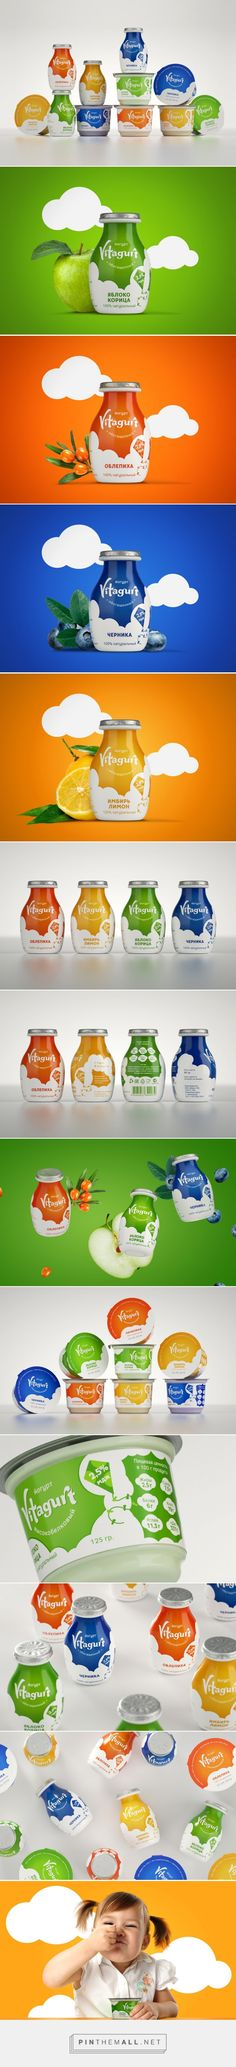 Vitagurt  - Packaging of the World - Creative Package Design Gallery - http://www.packagingoftheworld.com/2016/04/vitagurt.html